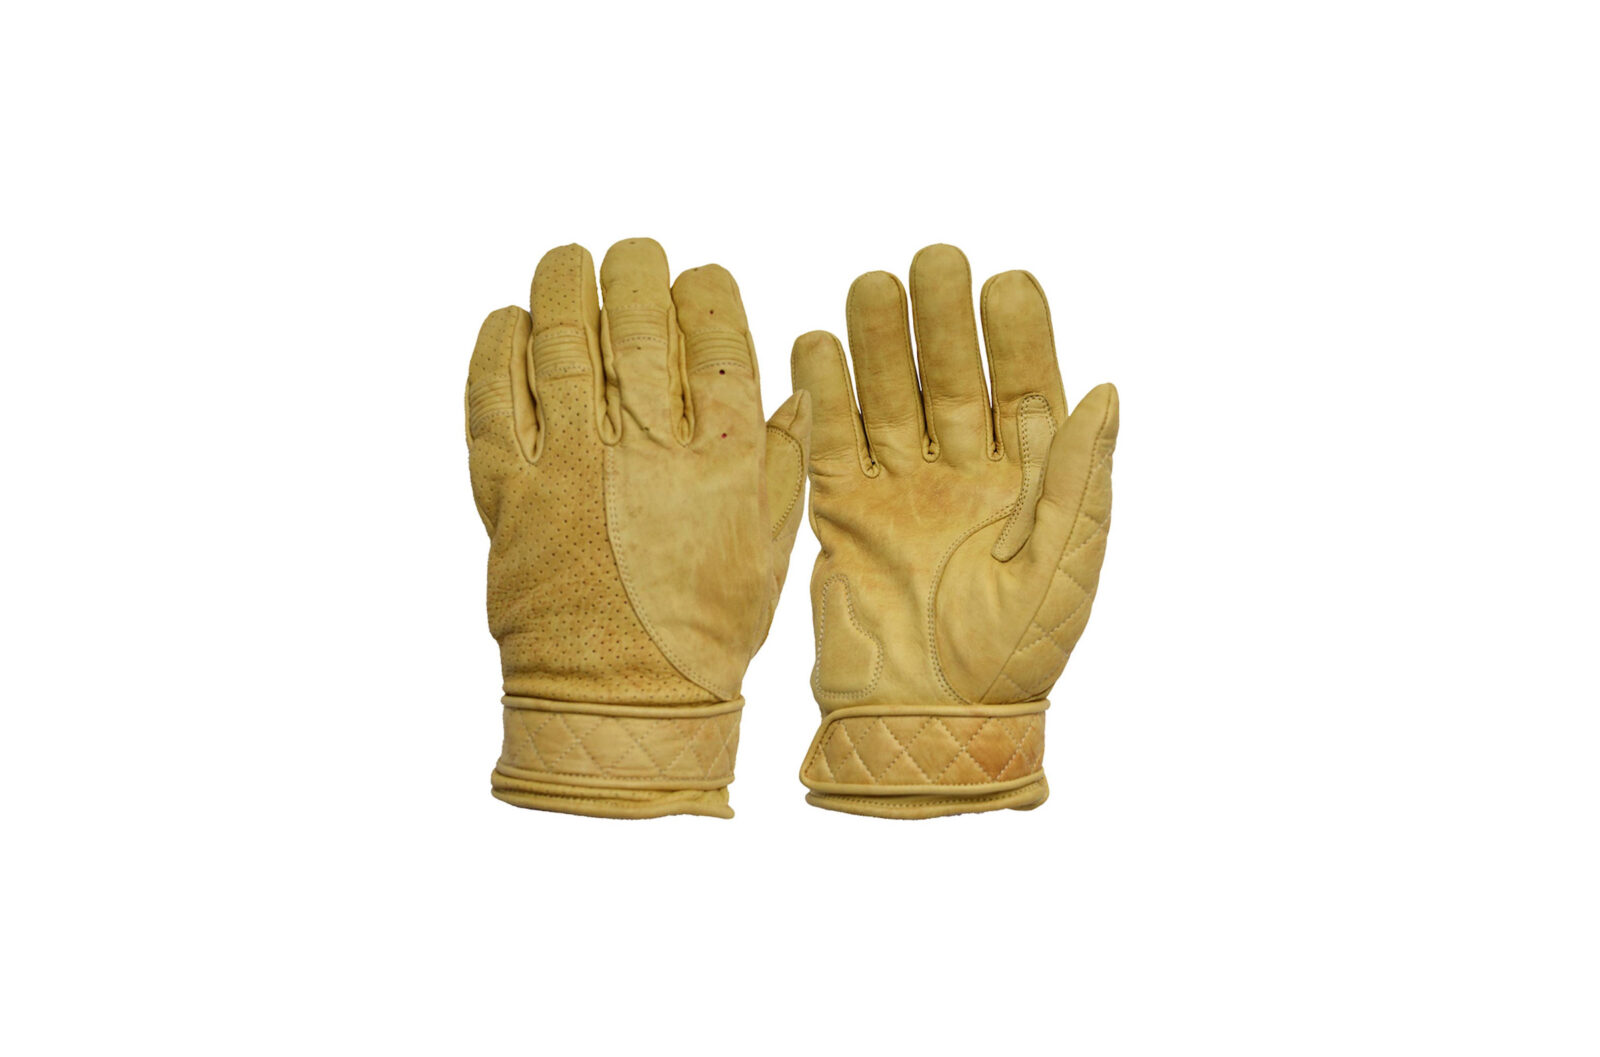 Goldtop Short Bobber Motorcycle Gloves 1600x1057 - The British Originals: Goldtop Short Bobber Motorcycle Gloves